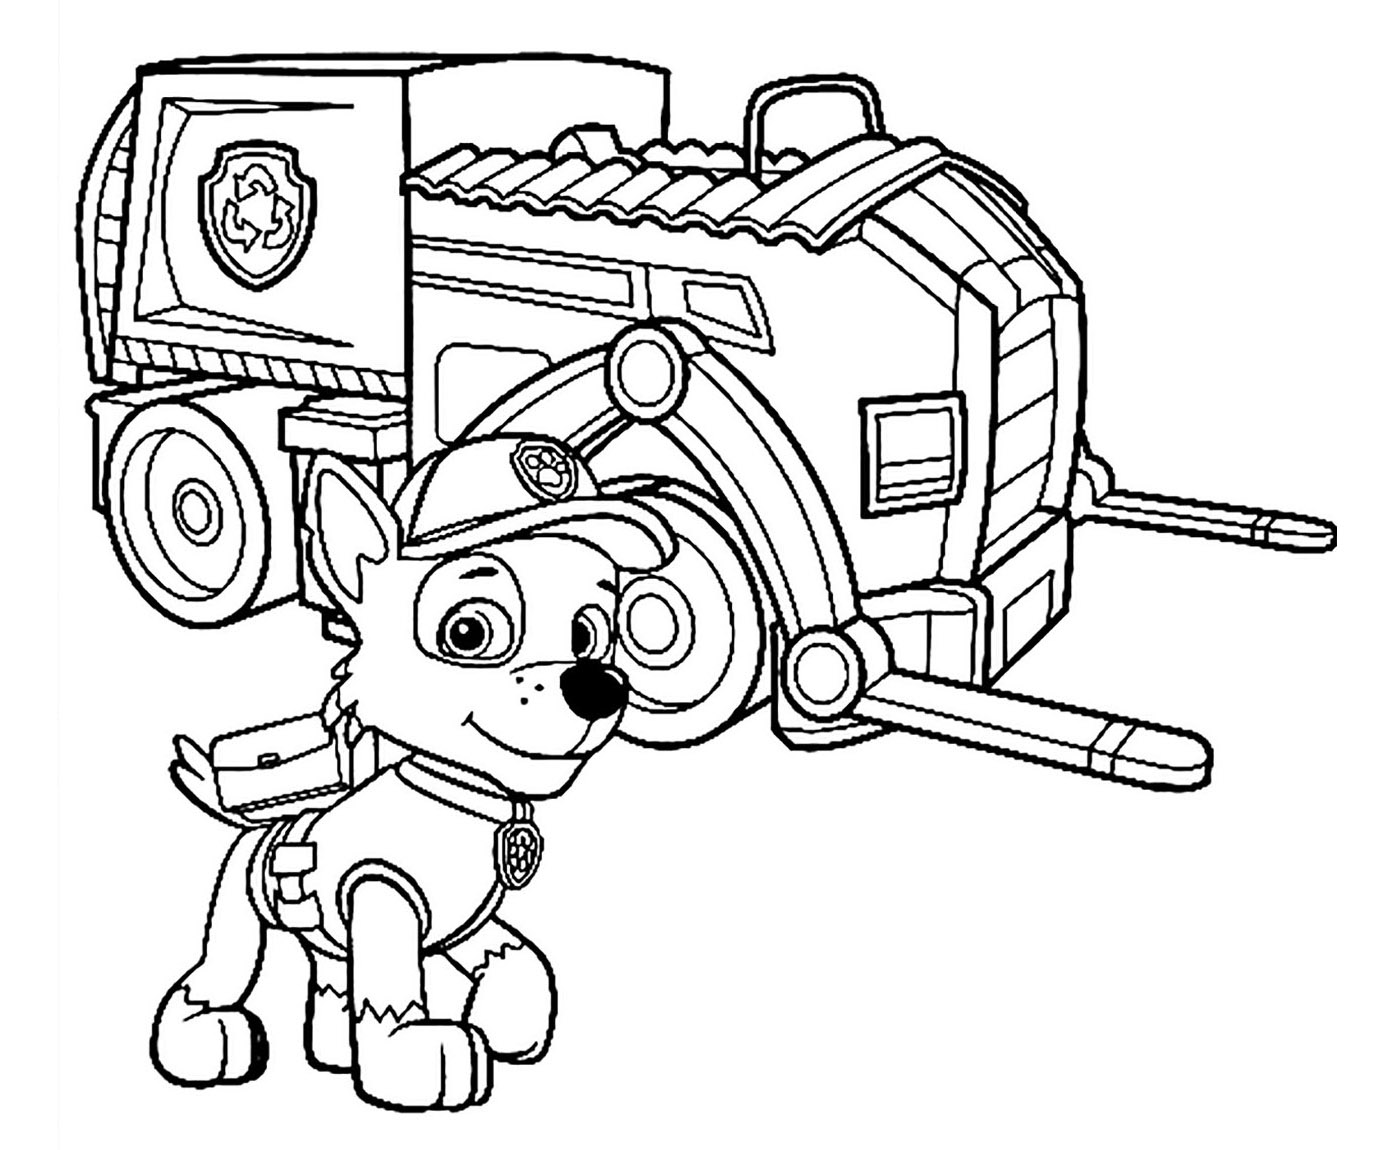 paw patrol vehicles coloring pages printable paw patrol vehicles coloring pages paw paw pages coloring vehicles patrol